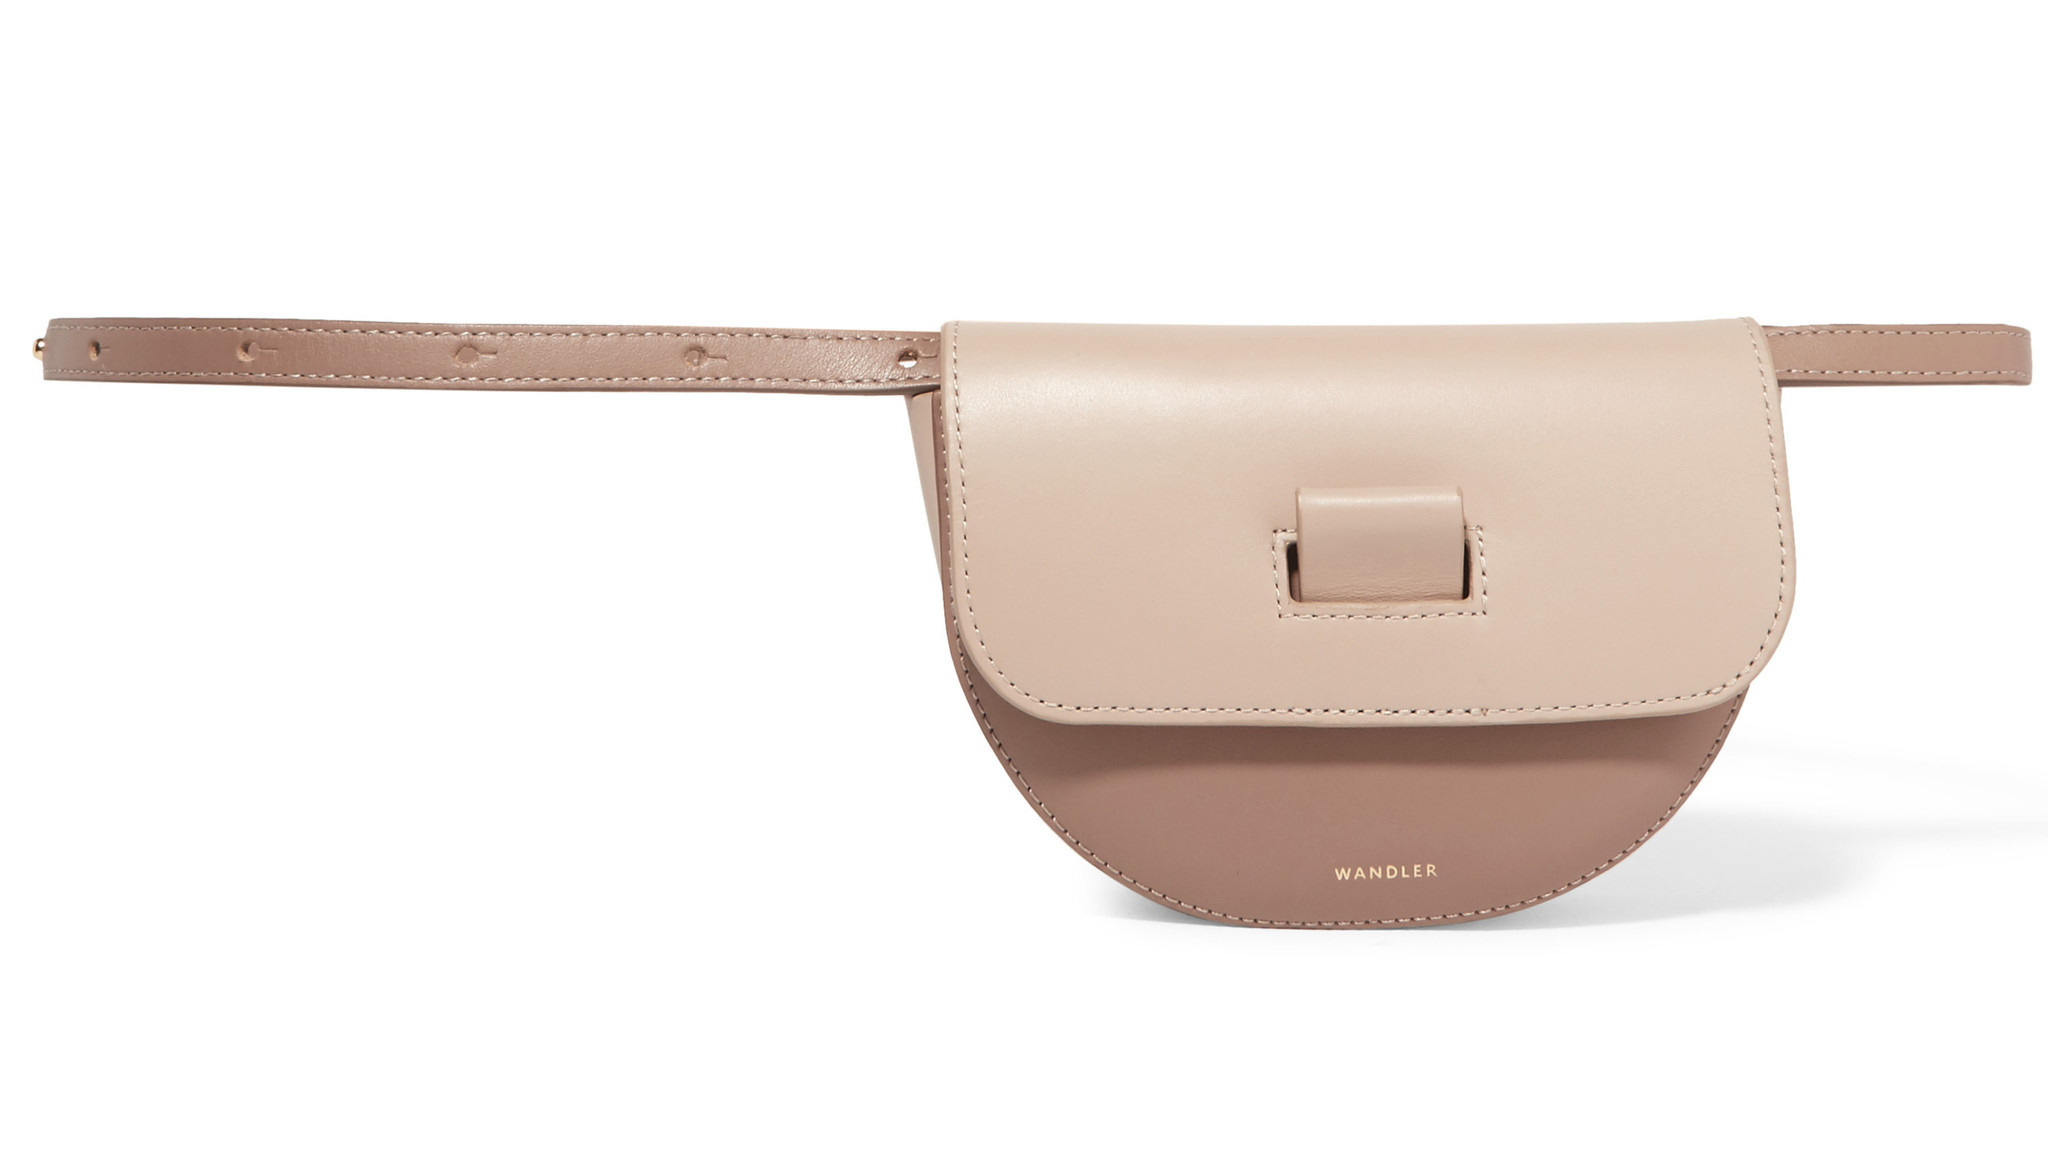 Wandler's Anna two-tone leather belt bag.